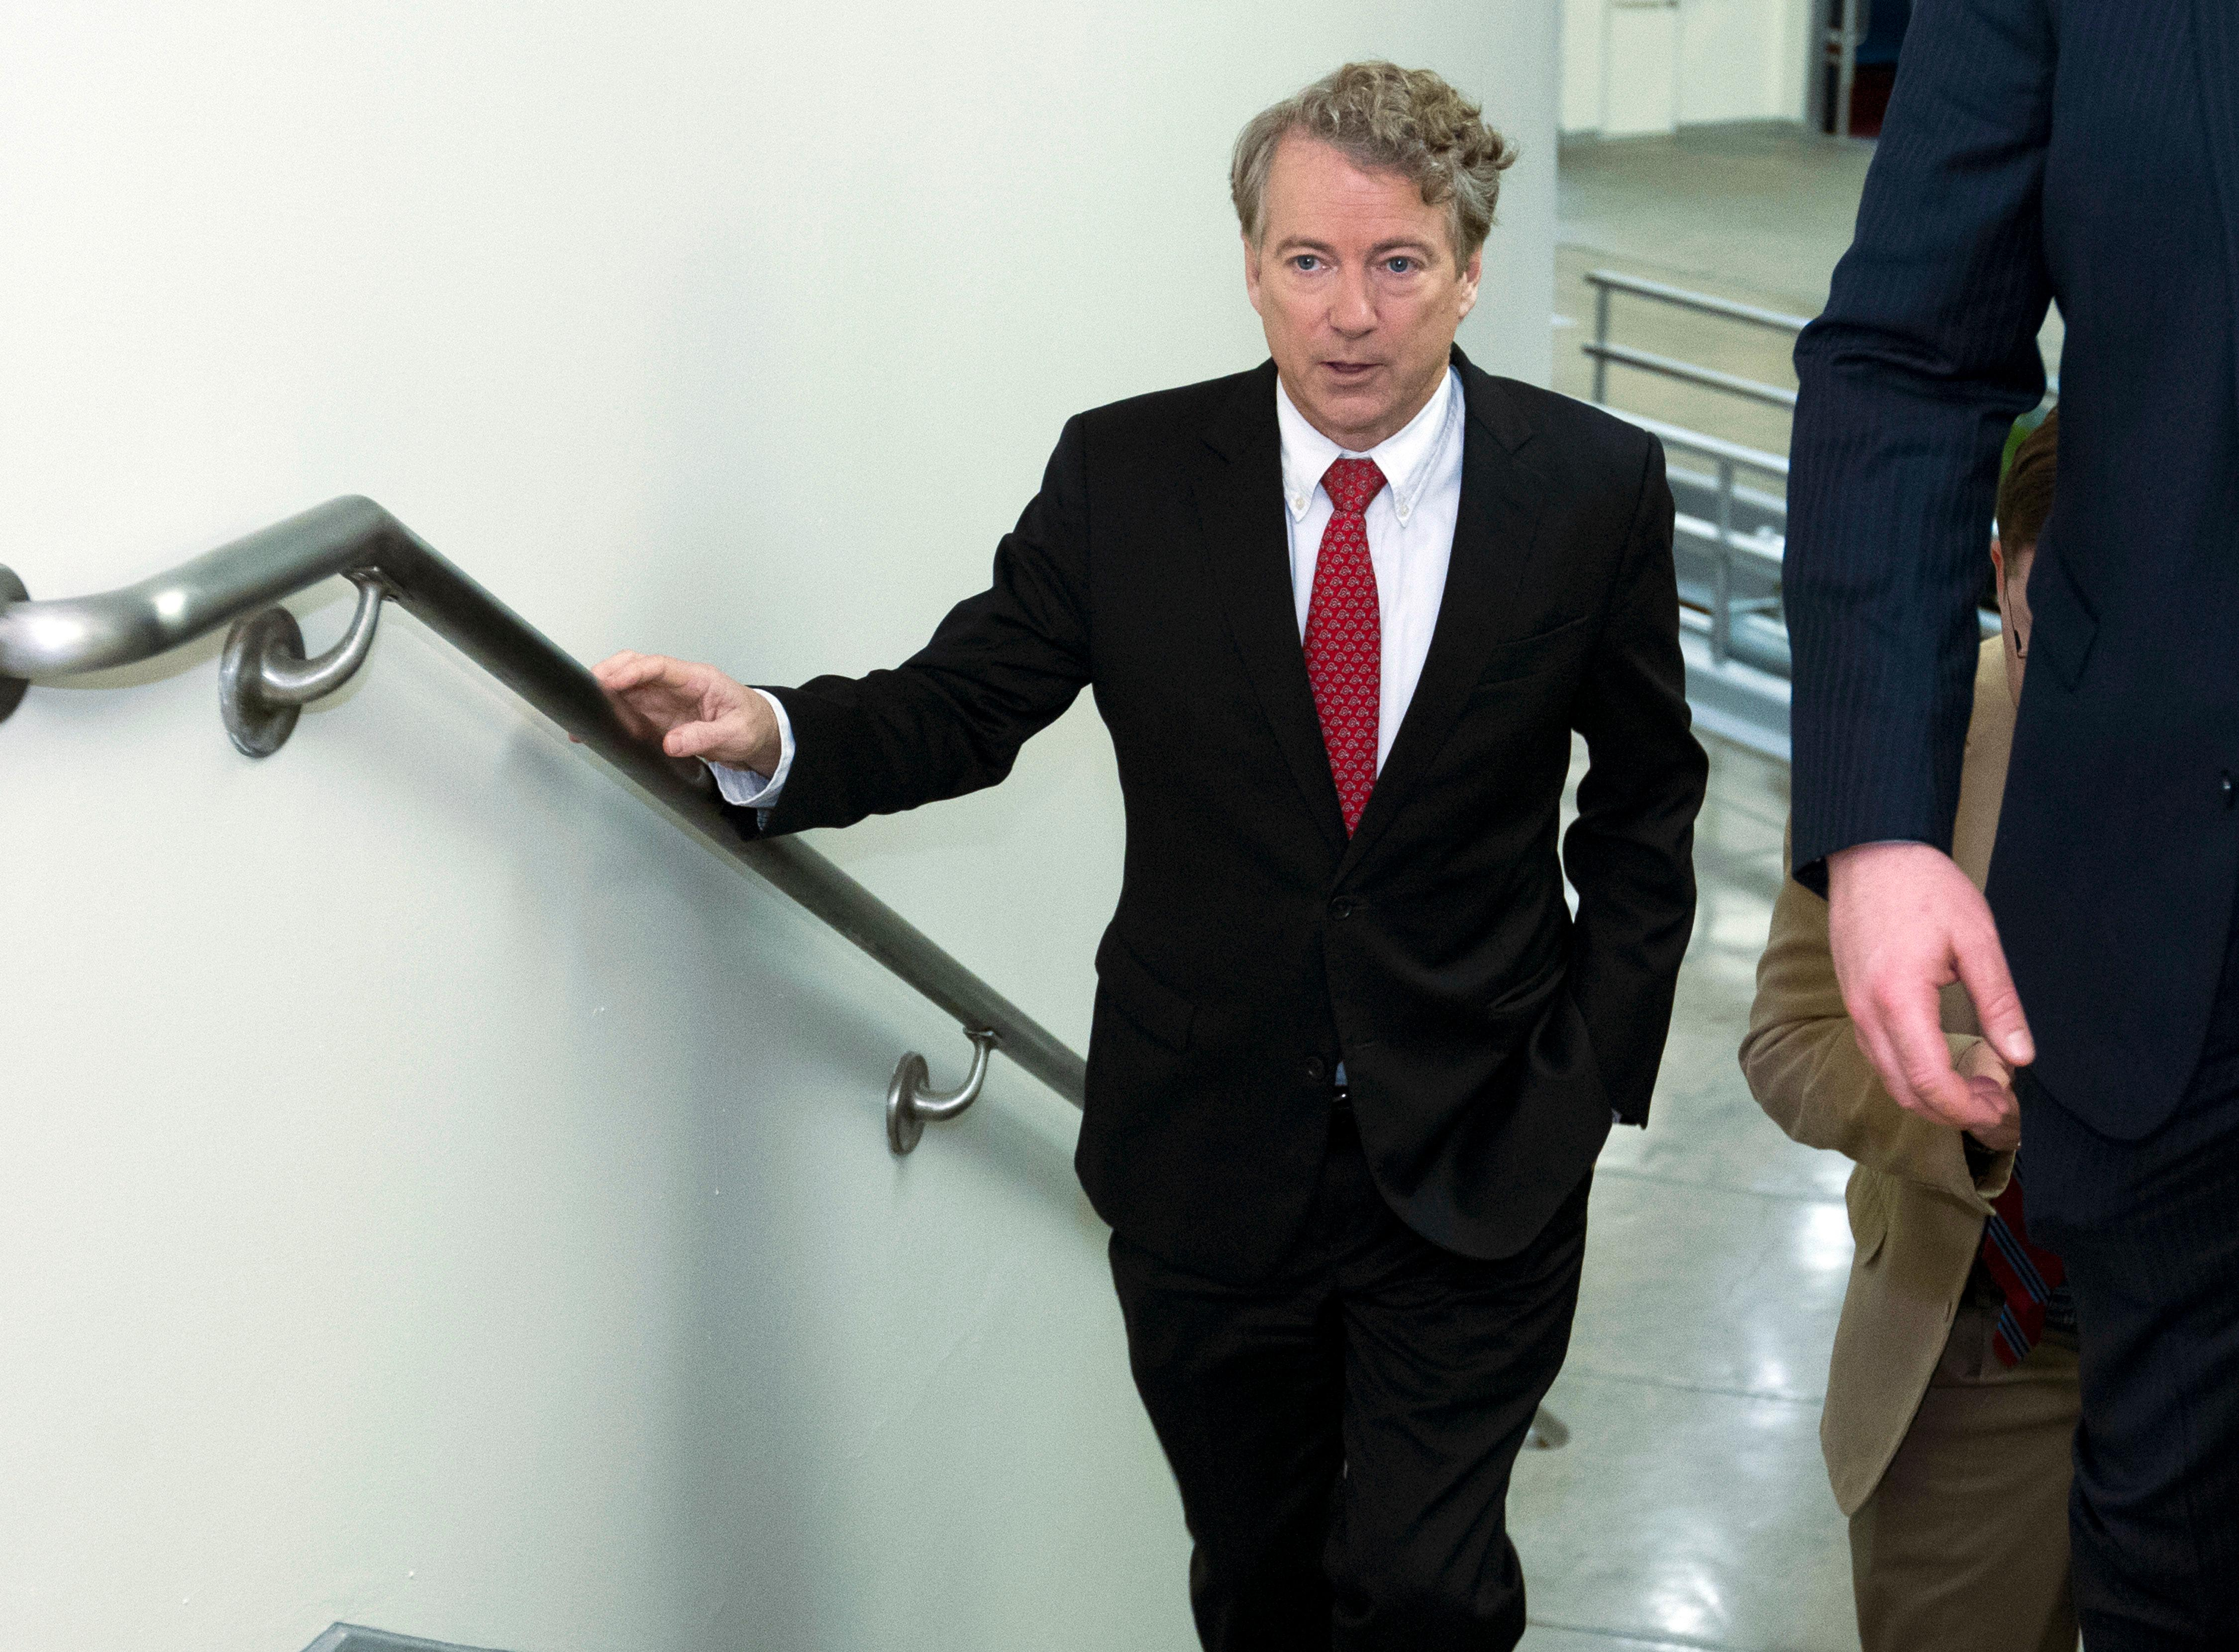 Sen. Rand Paul, R-Ky., walks to the Senate chamber, at the U.S. Capitol, Thursday, Feb. 8, 2018, in Washington.(AP Photo/Jose Luis Magana)